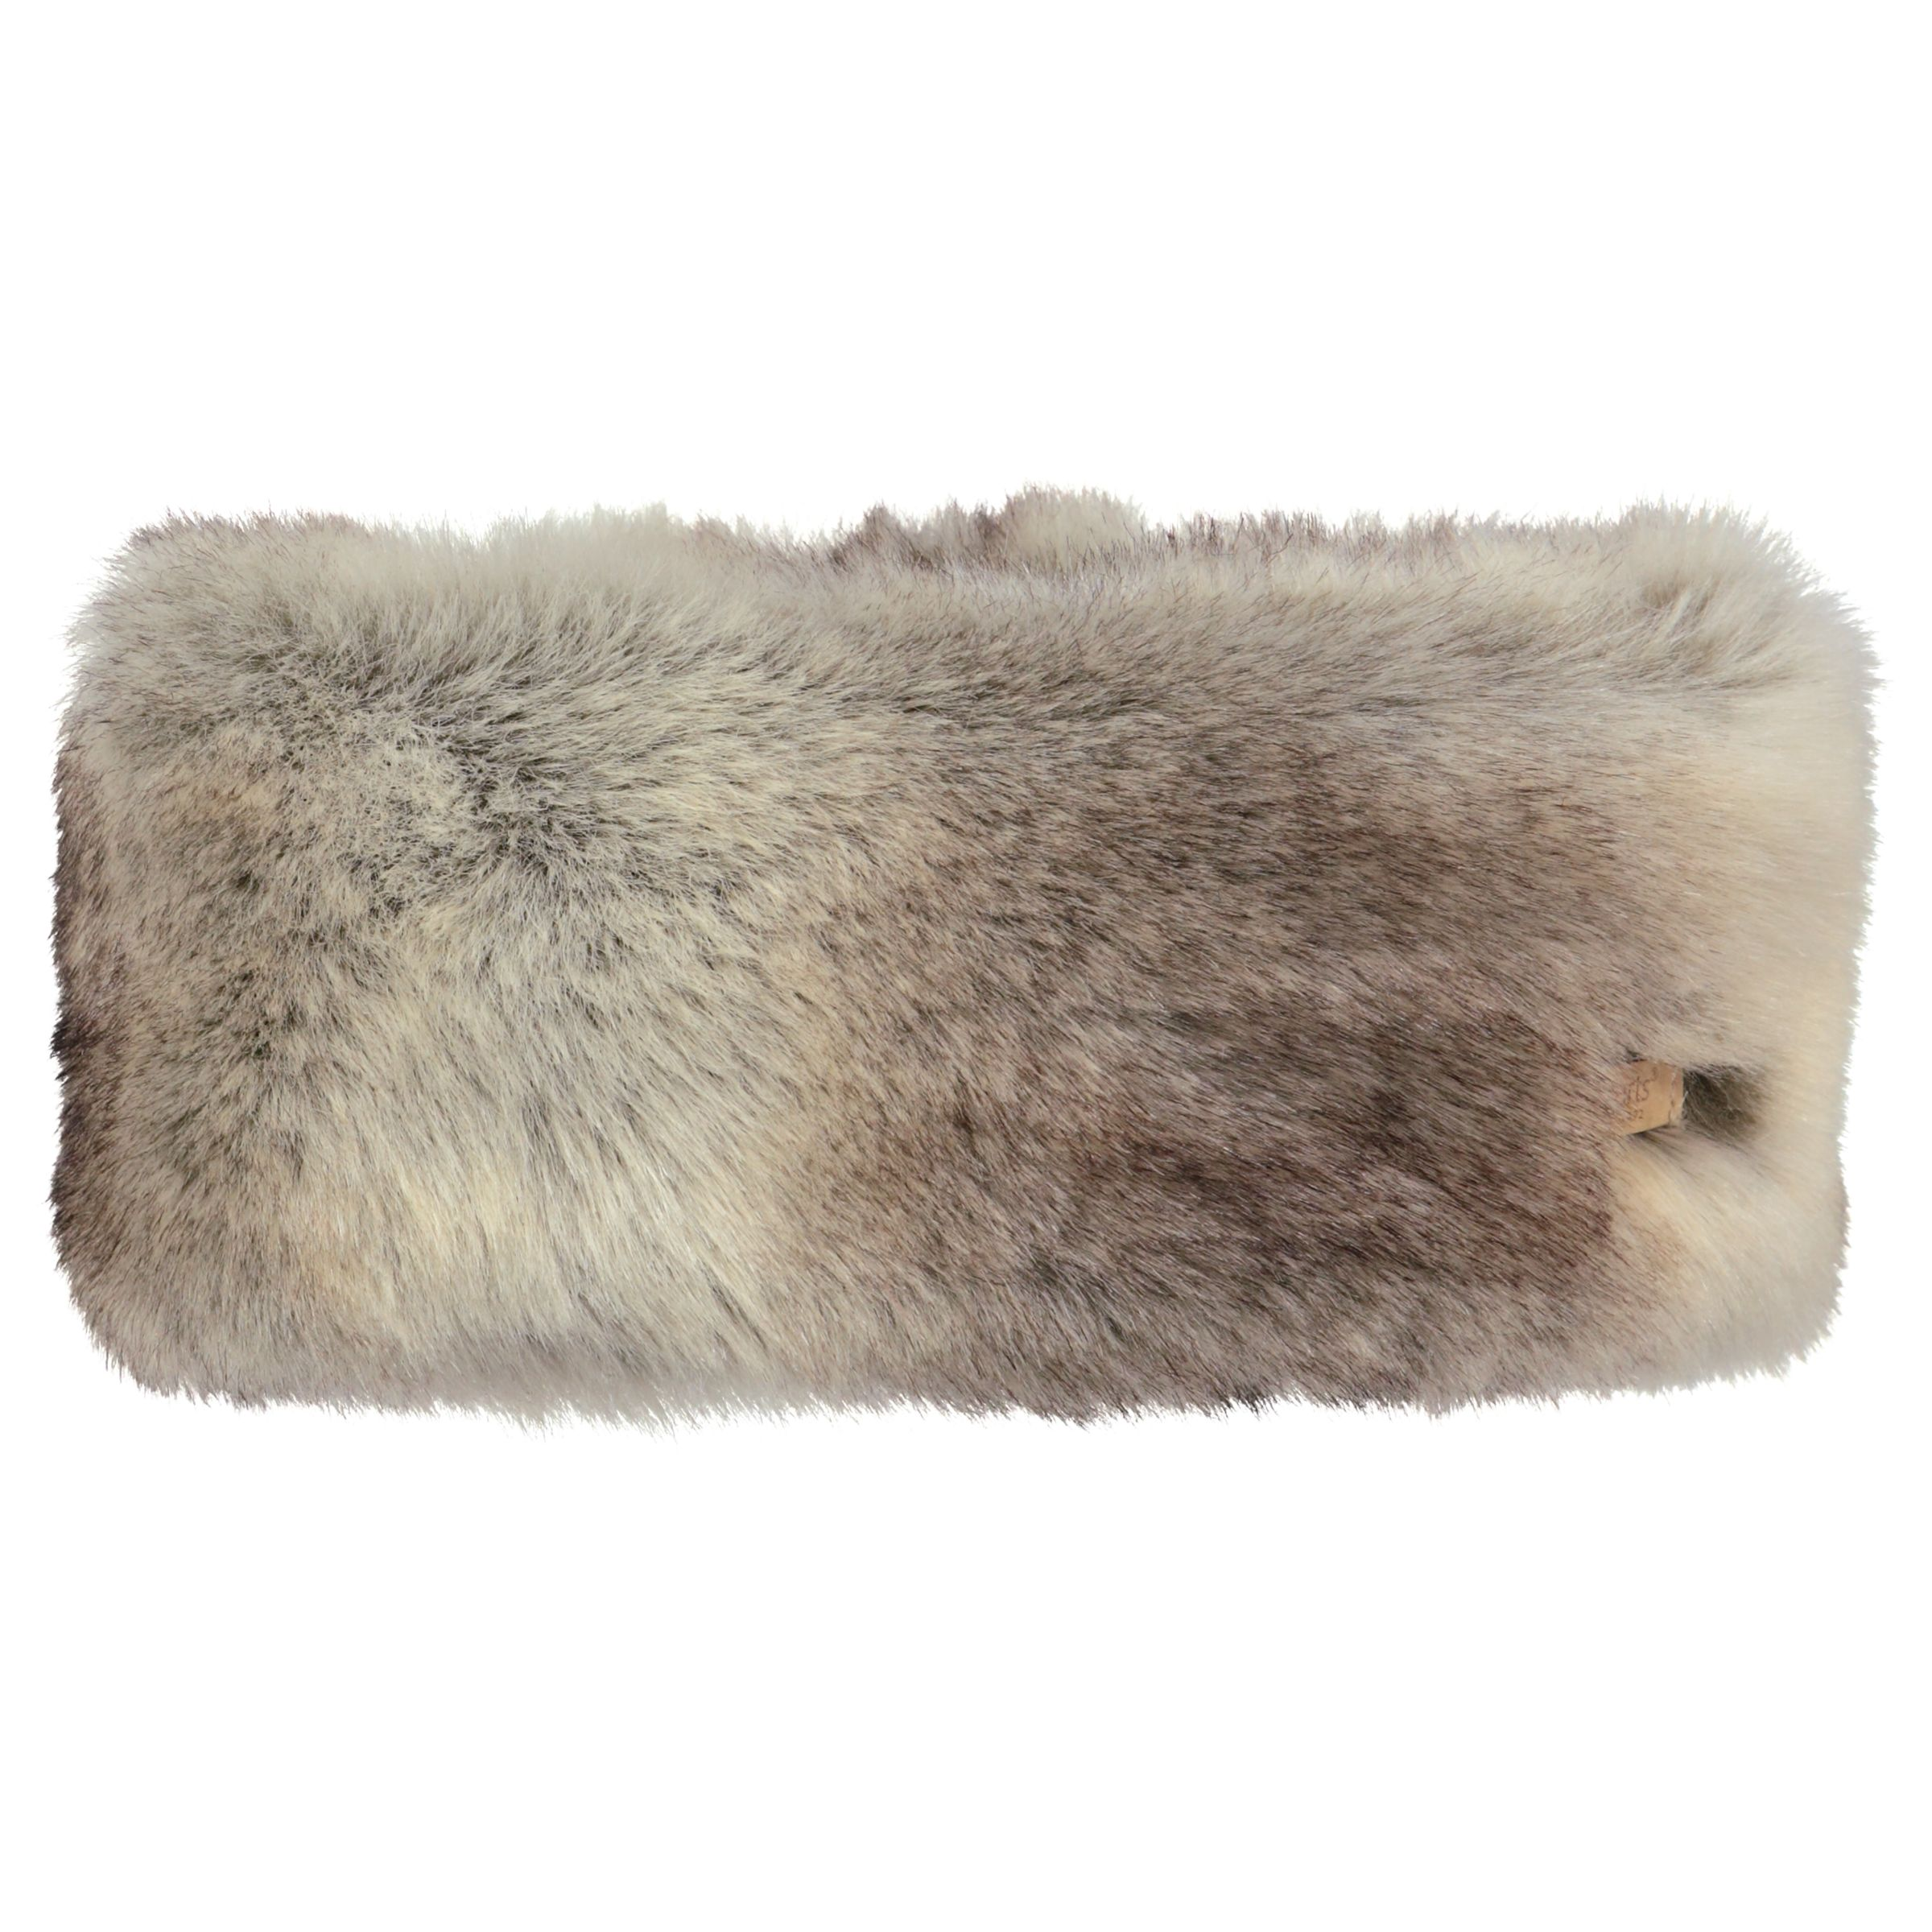 Barts Barts Faux Fur Headband, One Size, Brown